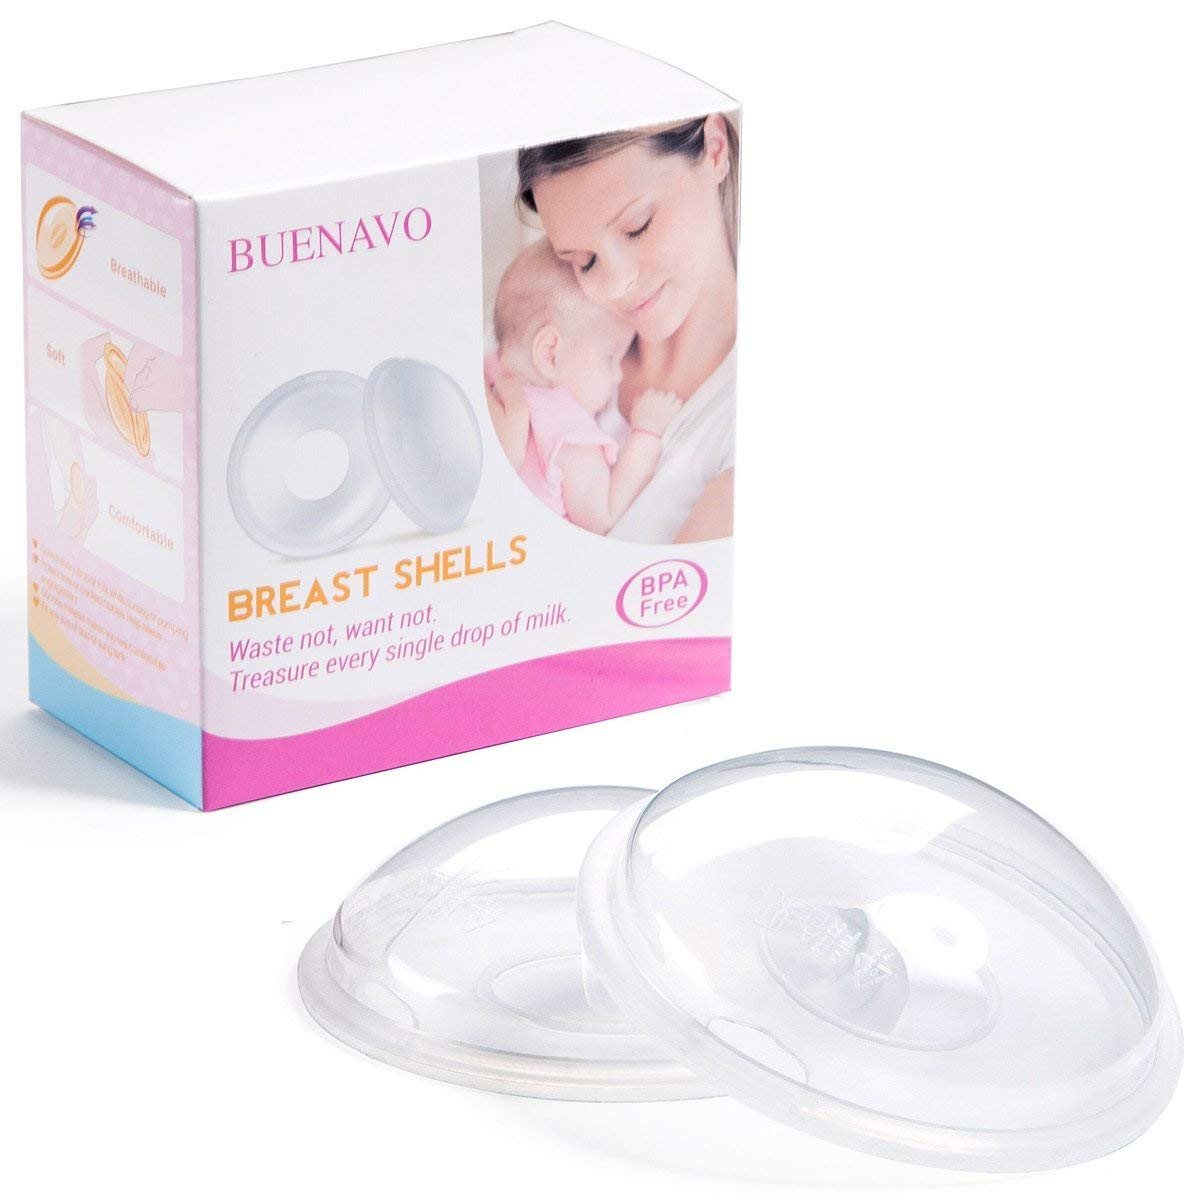 2018 UPGRADED Breast Shells for Breastfeeding Silicone Suction Breast Milk Saver Nursing Cups for Nursing Moms to Ease Nipple Pain, BPA-Free Washable and Reusable (Pack of 2) BUENAVO JMBS01